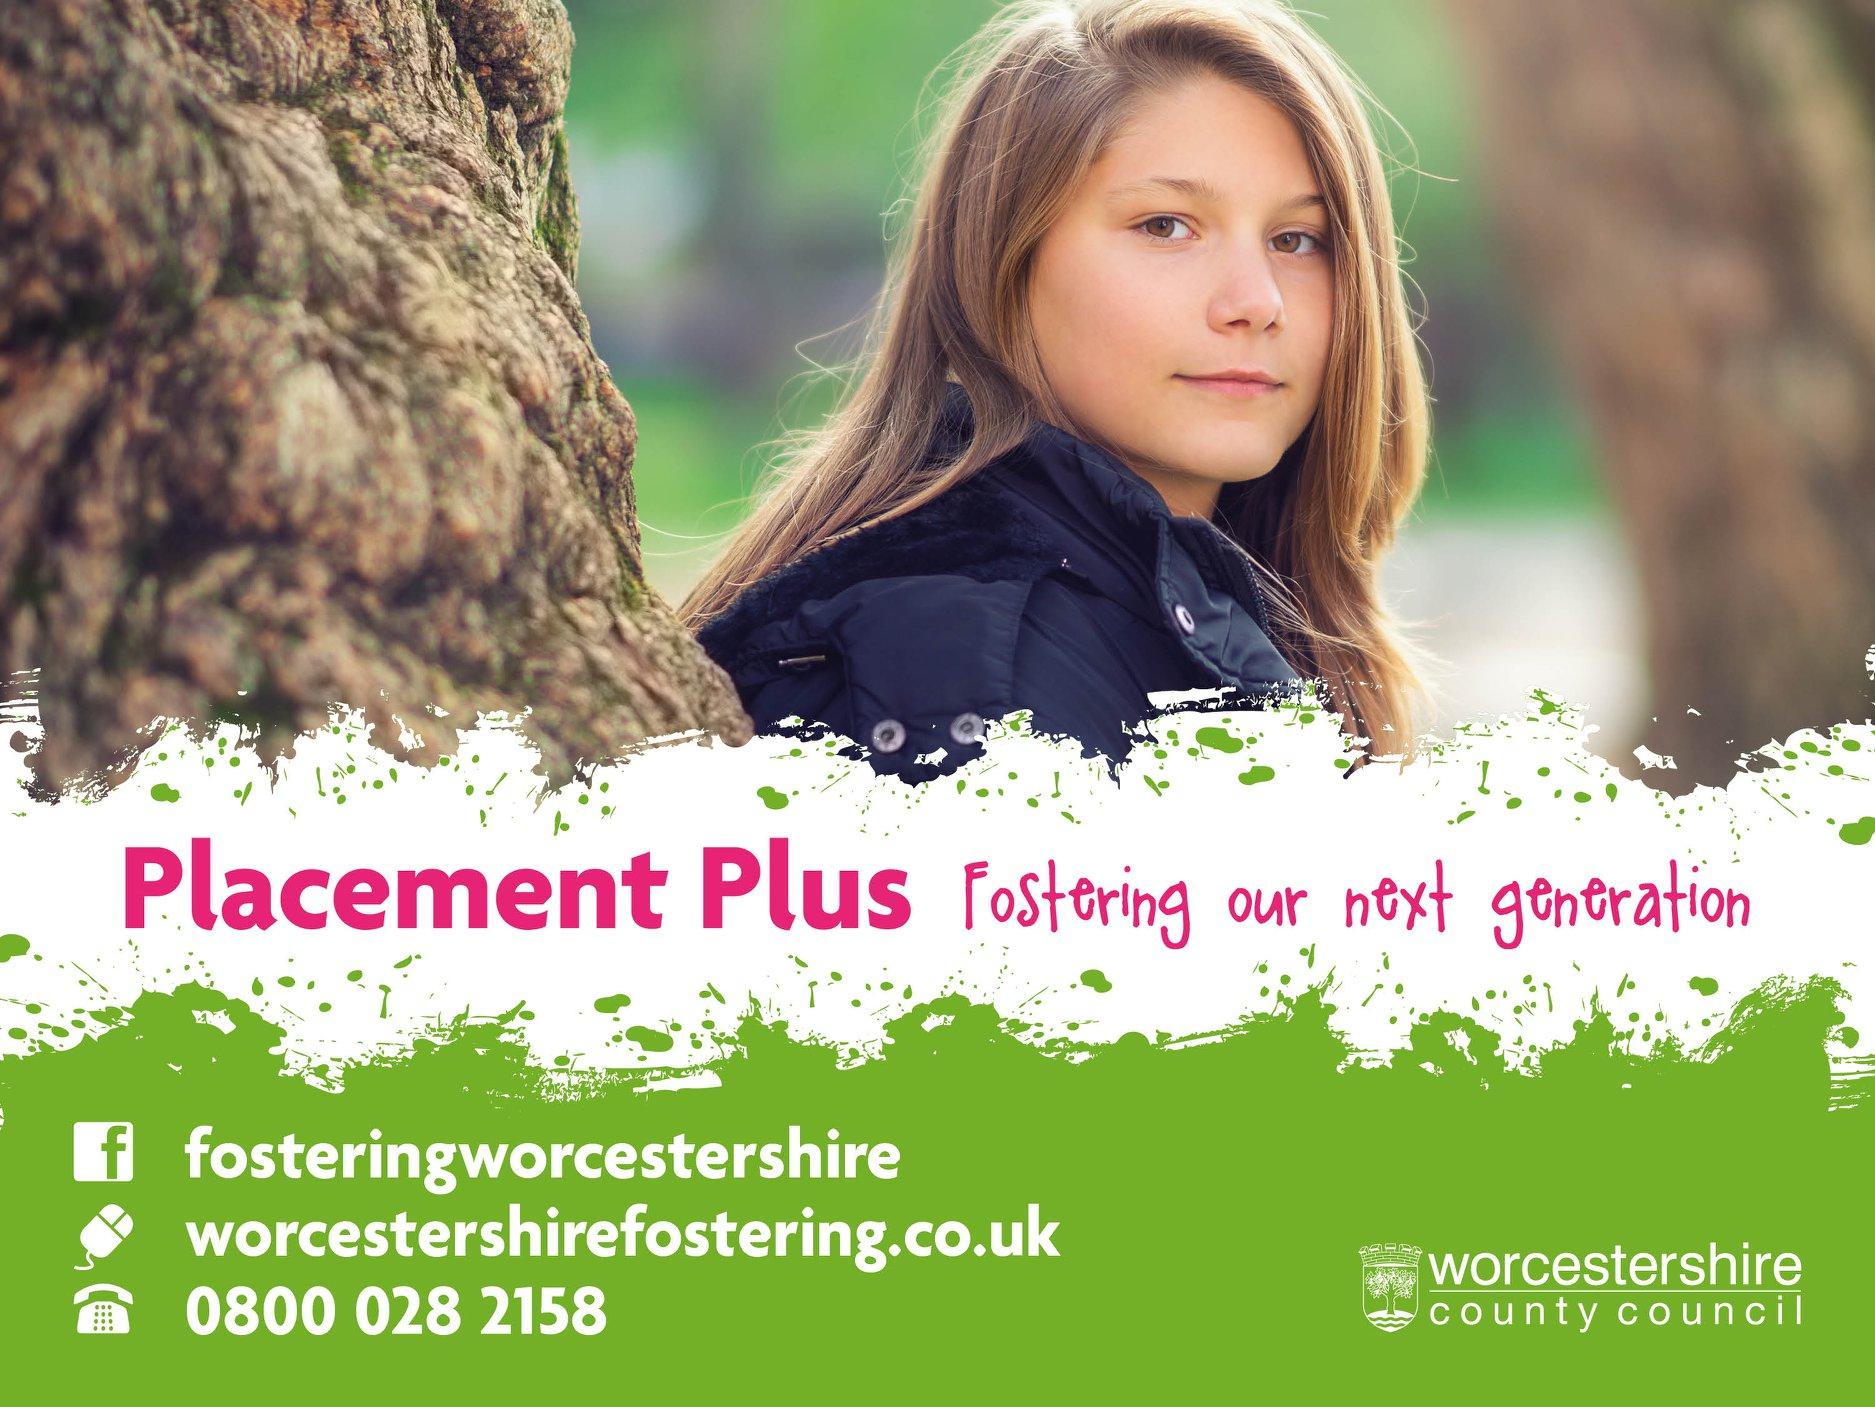 Worcestershire Fostering Service, Placement Plus, New Carers